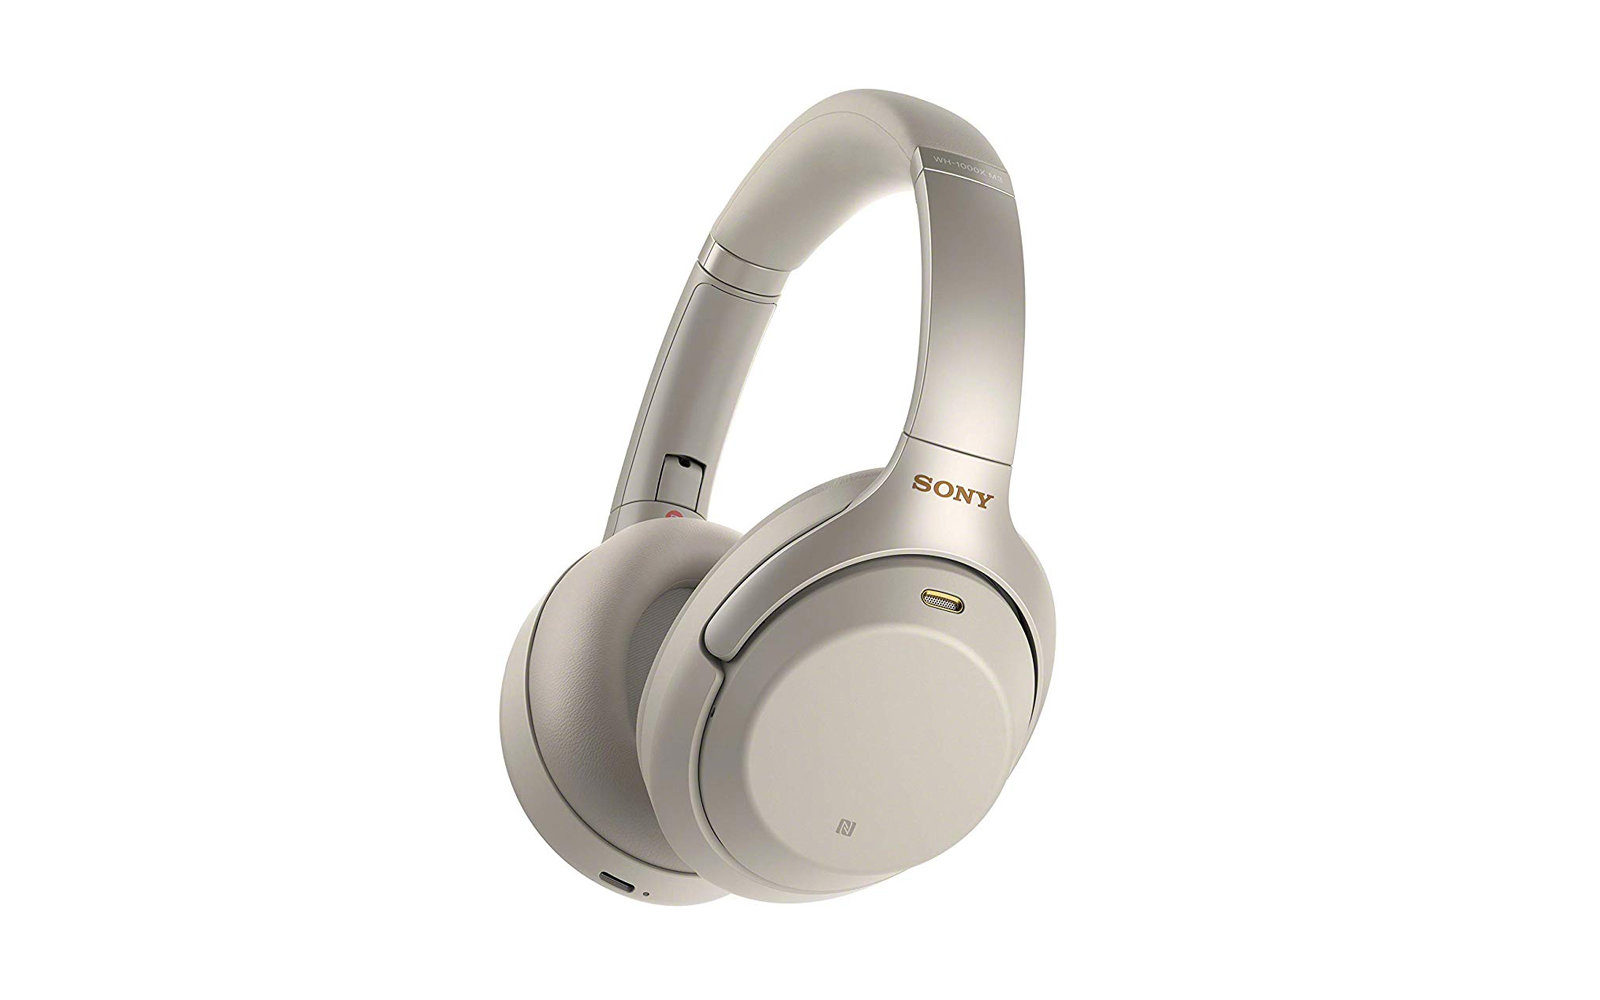 Sony WH-1000XM3 Noise-cancelling Headphones